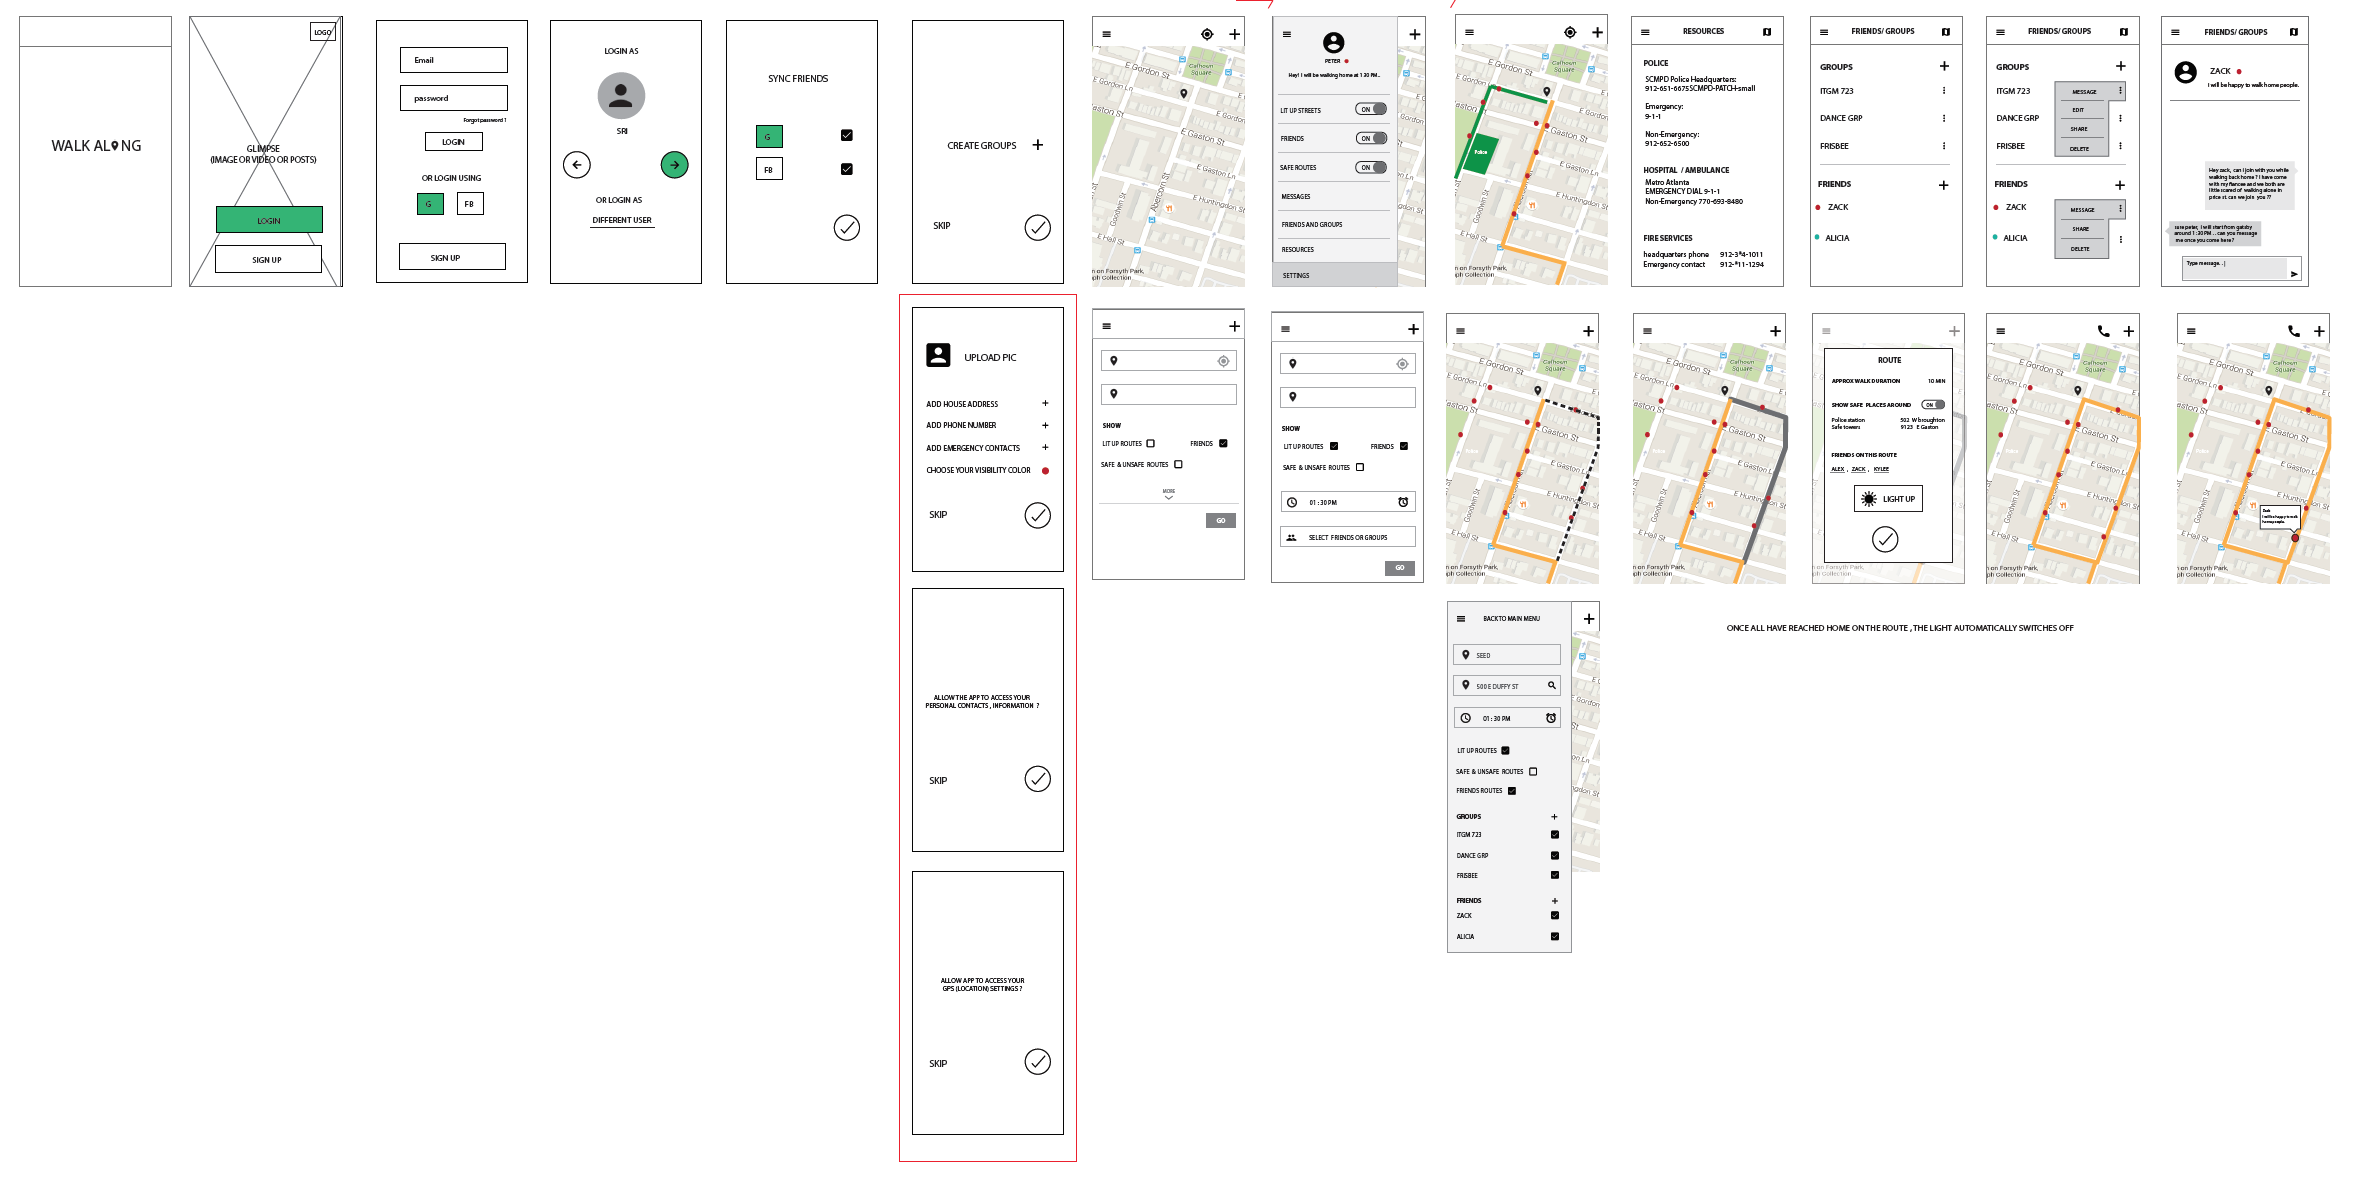 Wireframing - Information architecture in the form of a Sitemap or App Flow is created to guide the detailed aspects of the user experience.Ideating screen design and interactions with pen and paper keeps possibilities innovative and fluid.